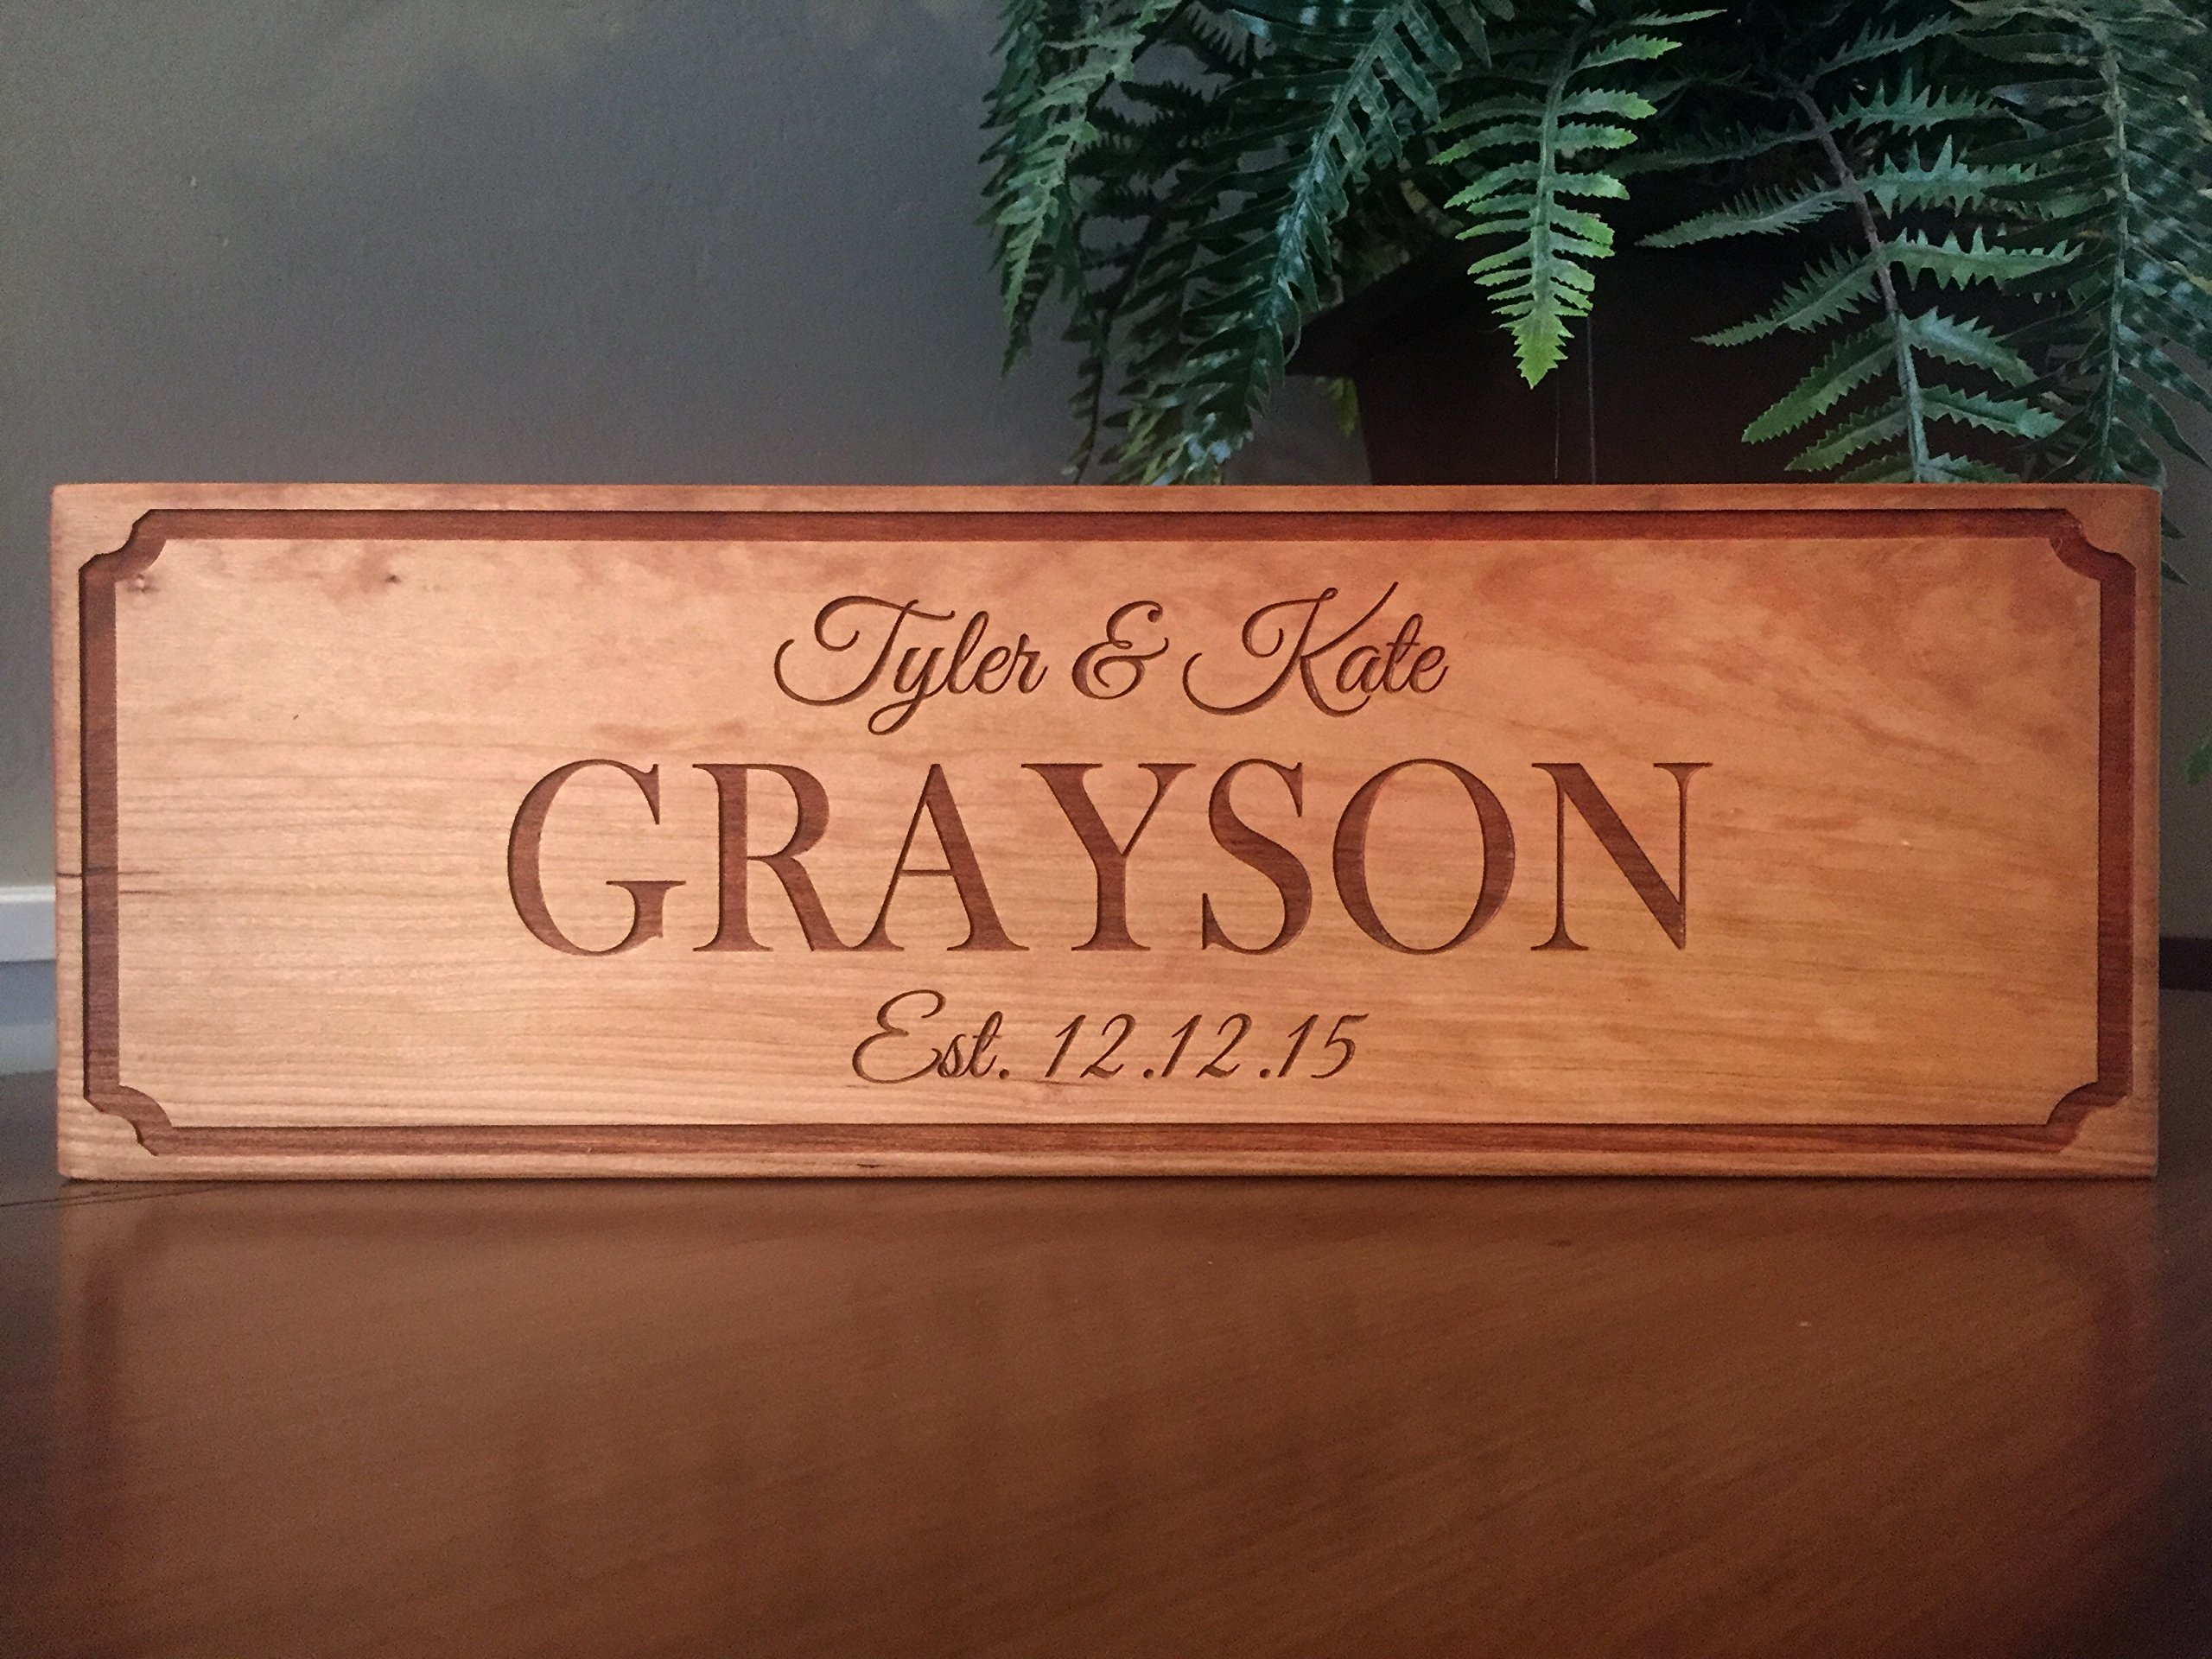 Qualtry Wedding Gifts for The Couple - Personalized Engraved Wedding Gifts Wooden Family Name Signs 5x15 (Cherry Wood, Grayson Design)